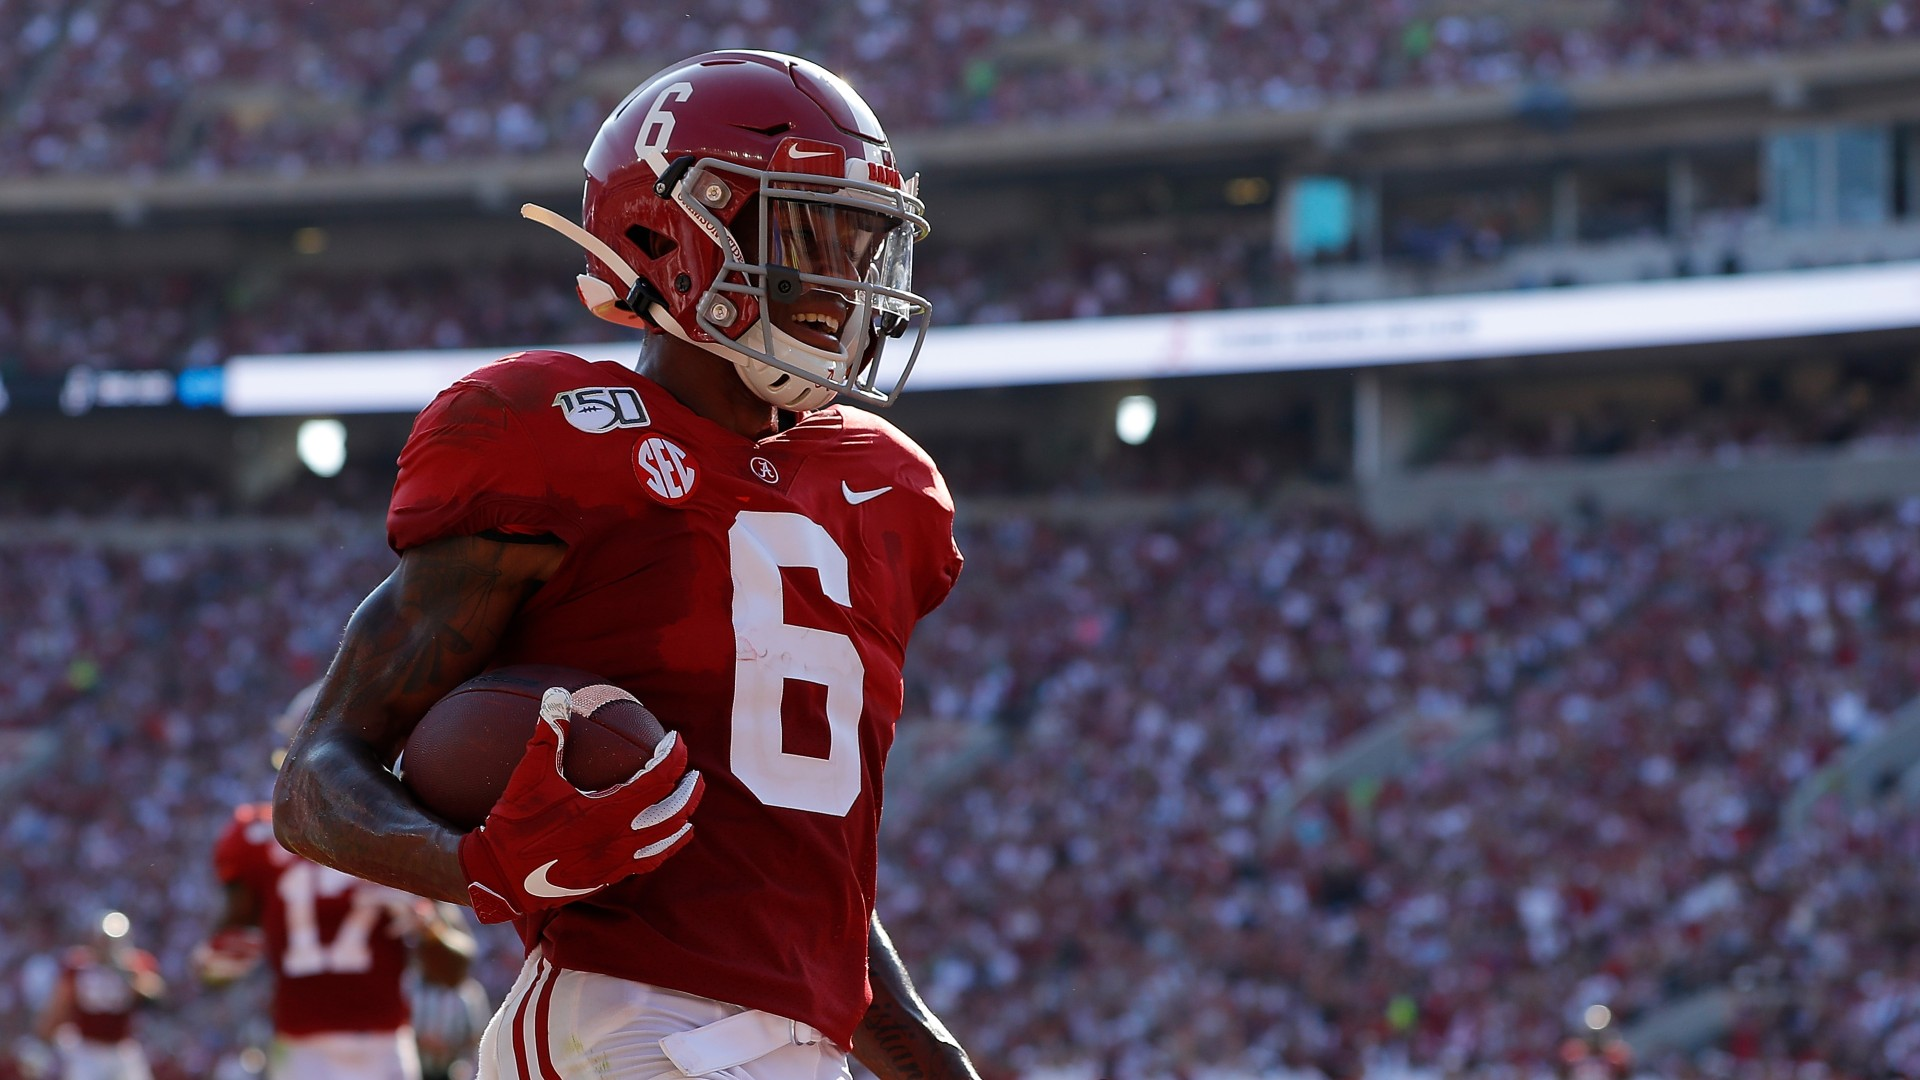 National Championship Promo: Bet $20, Win $100 if Alabama Covers +50! article feature image